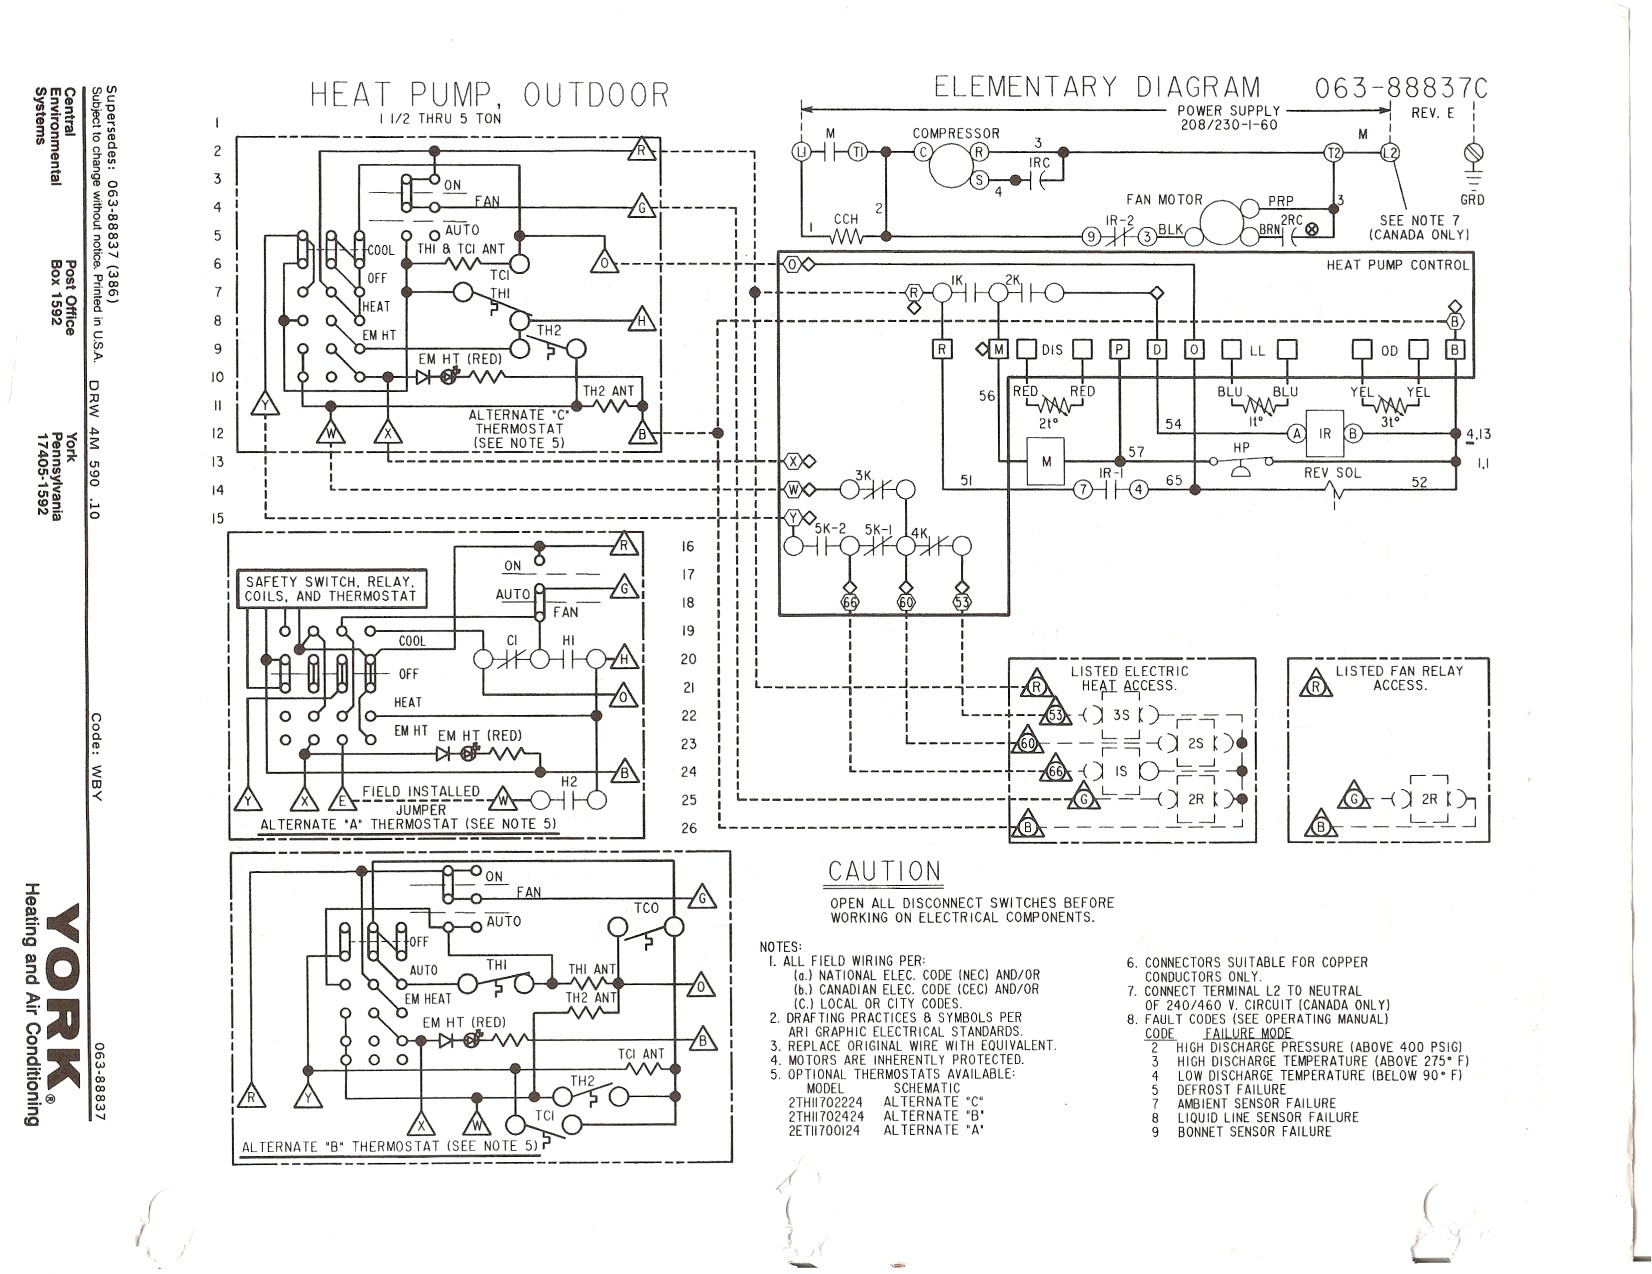 york package unit wiring diagram Collection-York Rooftop Unit Wiring Diagram Fresh York Wiring Diagrams 13-a